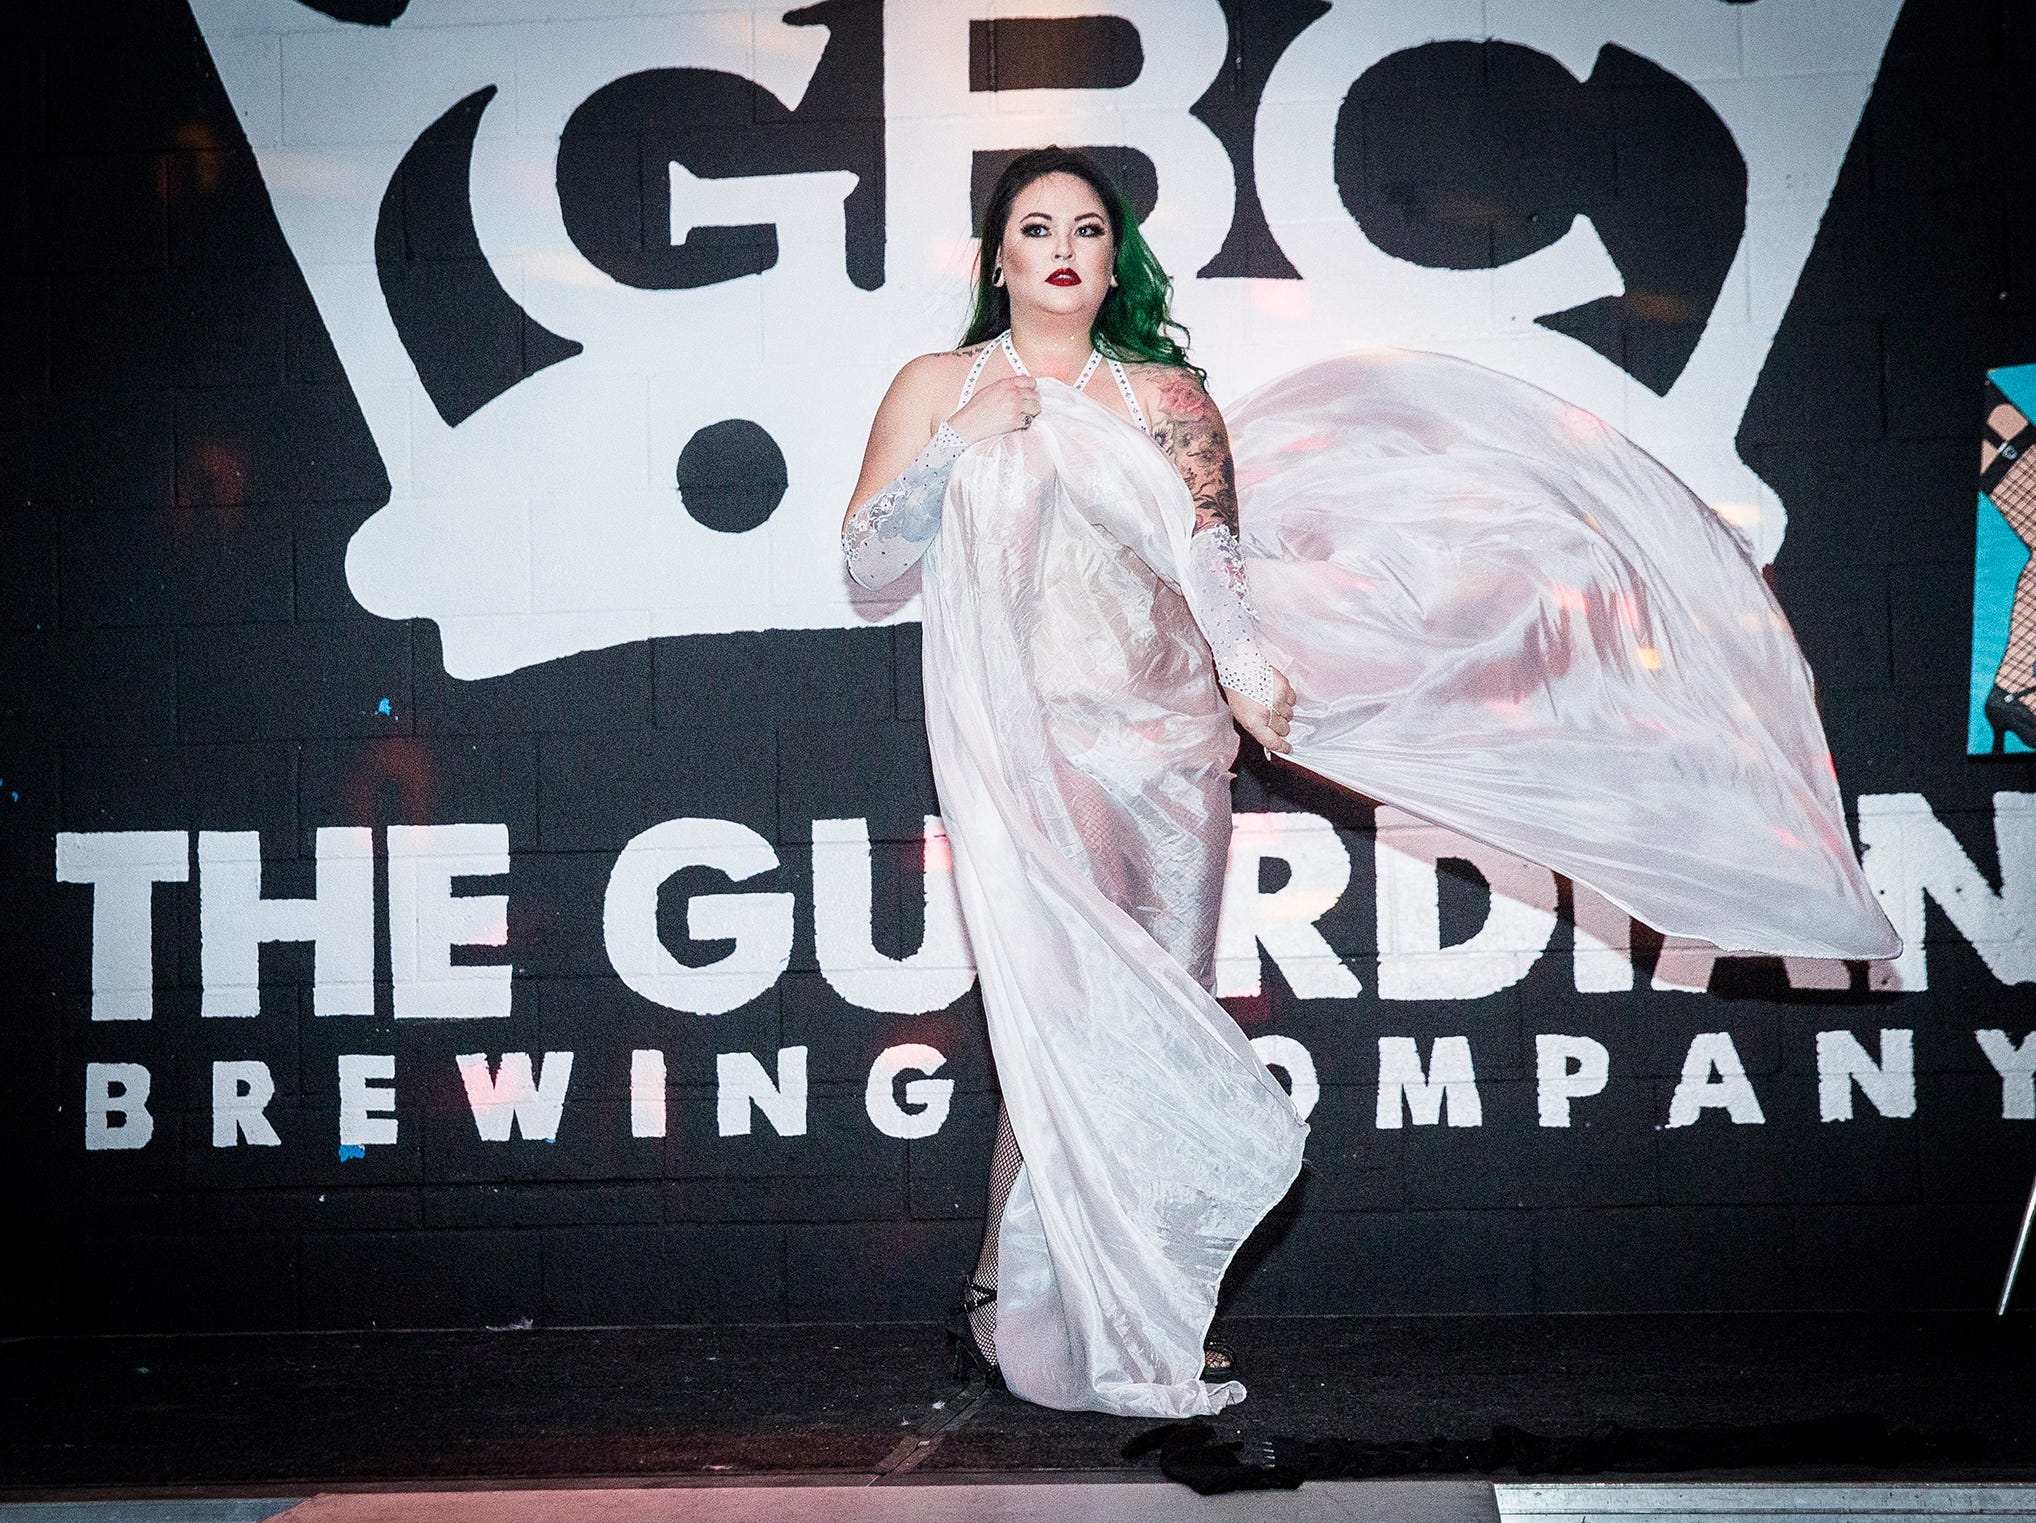 Bettie Nuggs of the Fabulous Funcie Femmes performs at The Guardian Brewing Company.